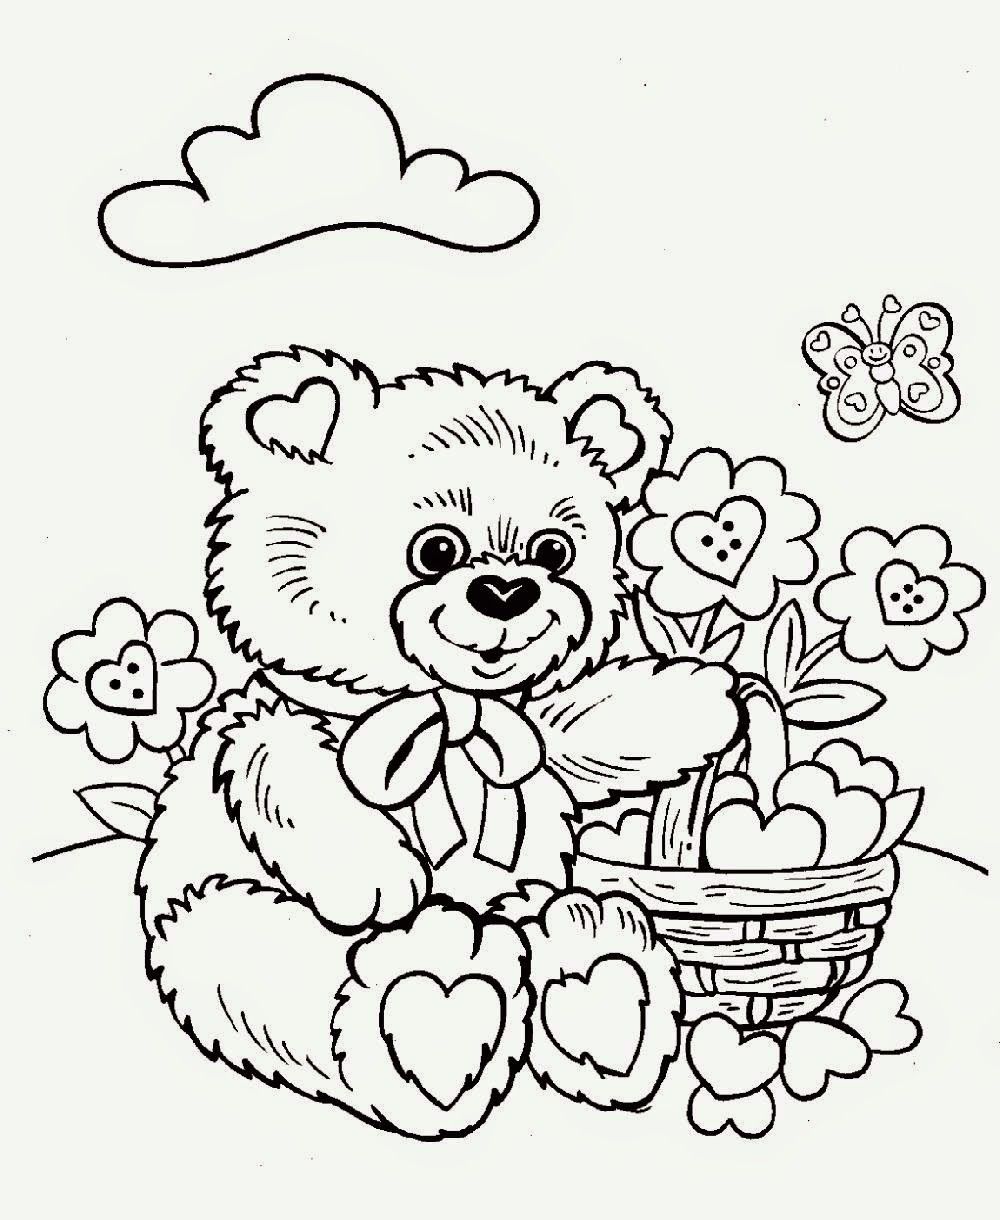 Crayola Coloring Pages Make Your Own  Printable Coloring Pages